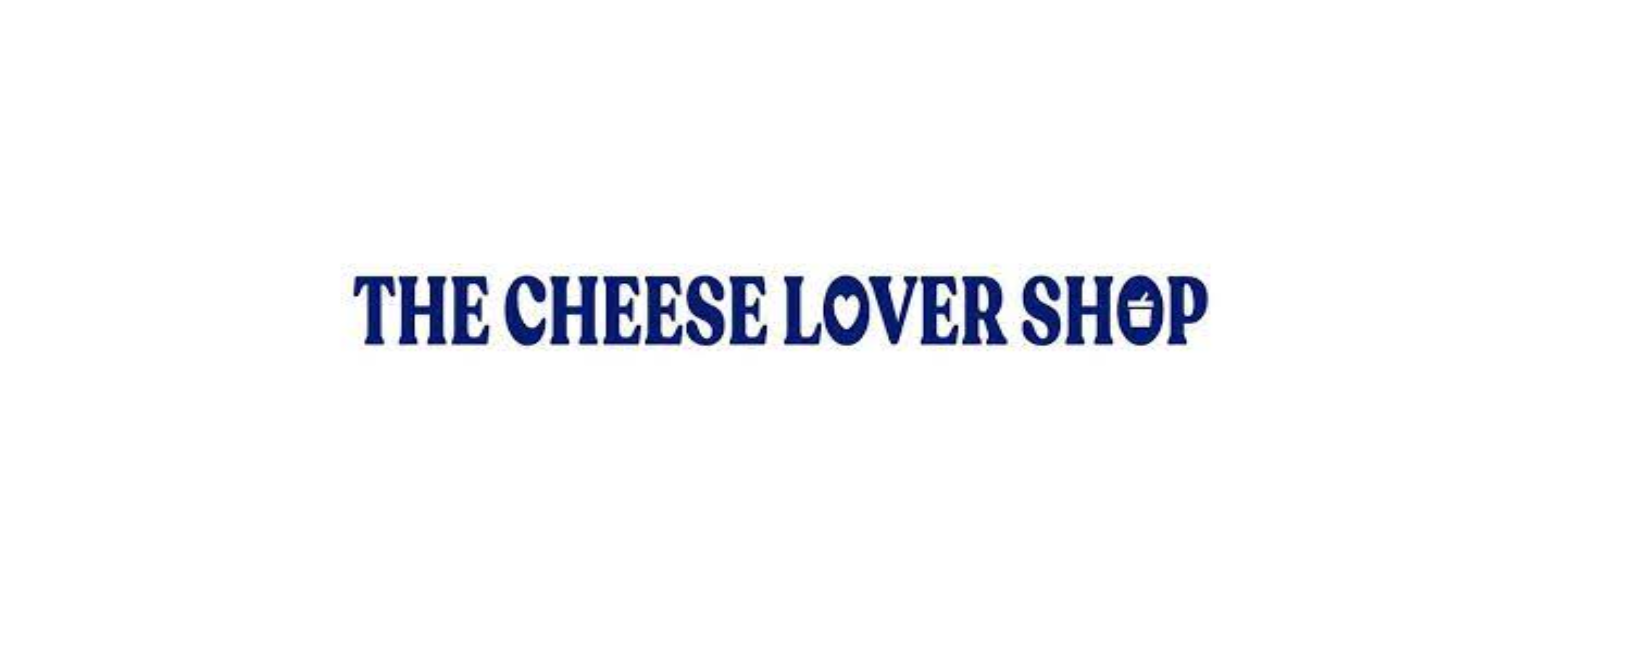 The Cheese Lover Shop Discount Code 2021